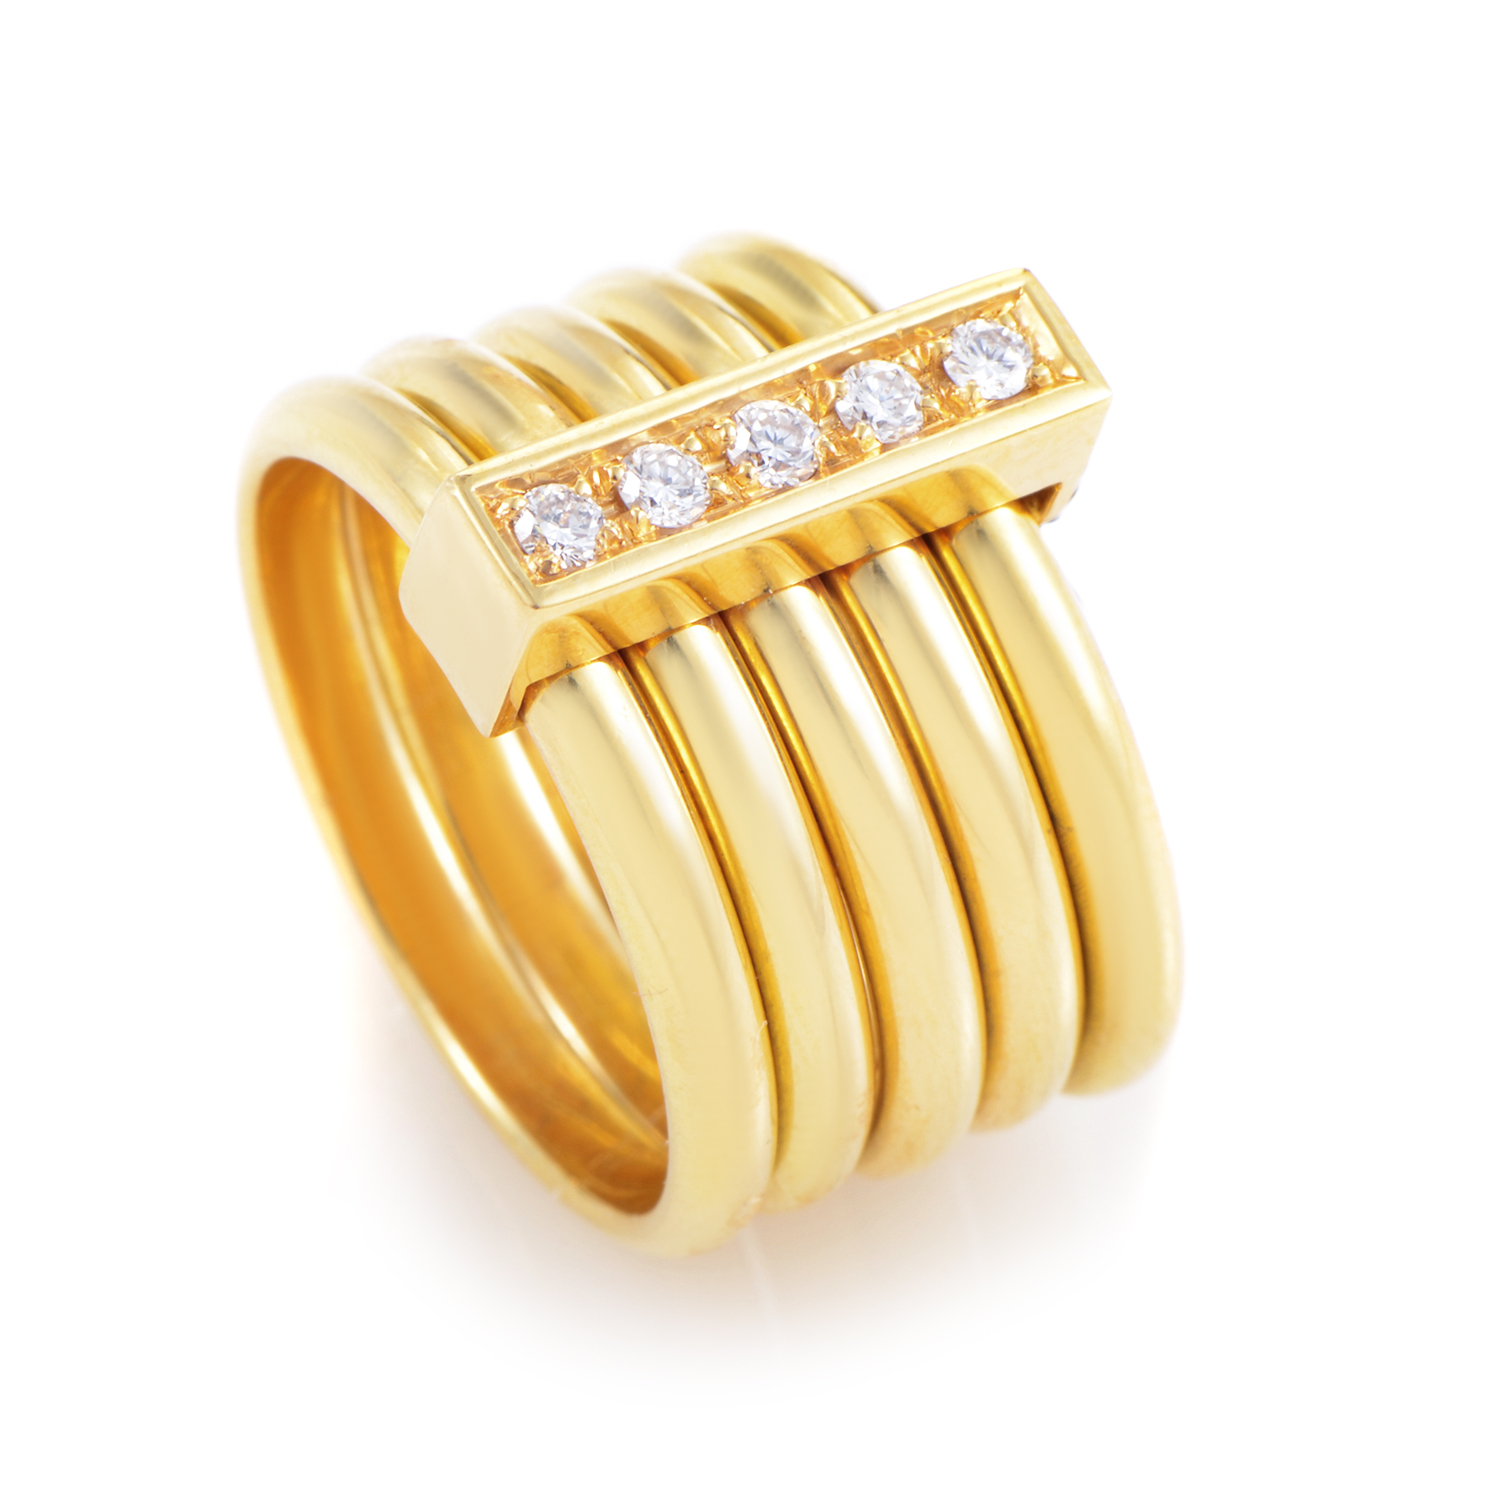 Women's 18K Yellow Gold 5 Band Diamond Ring